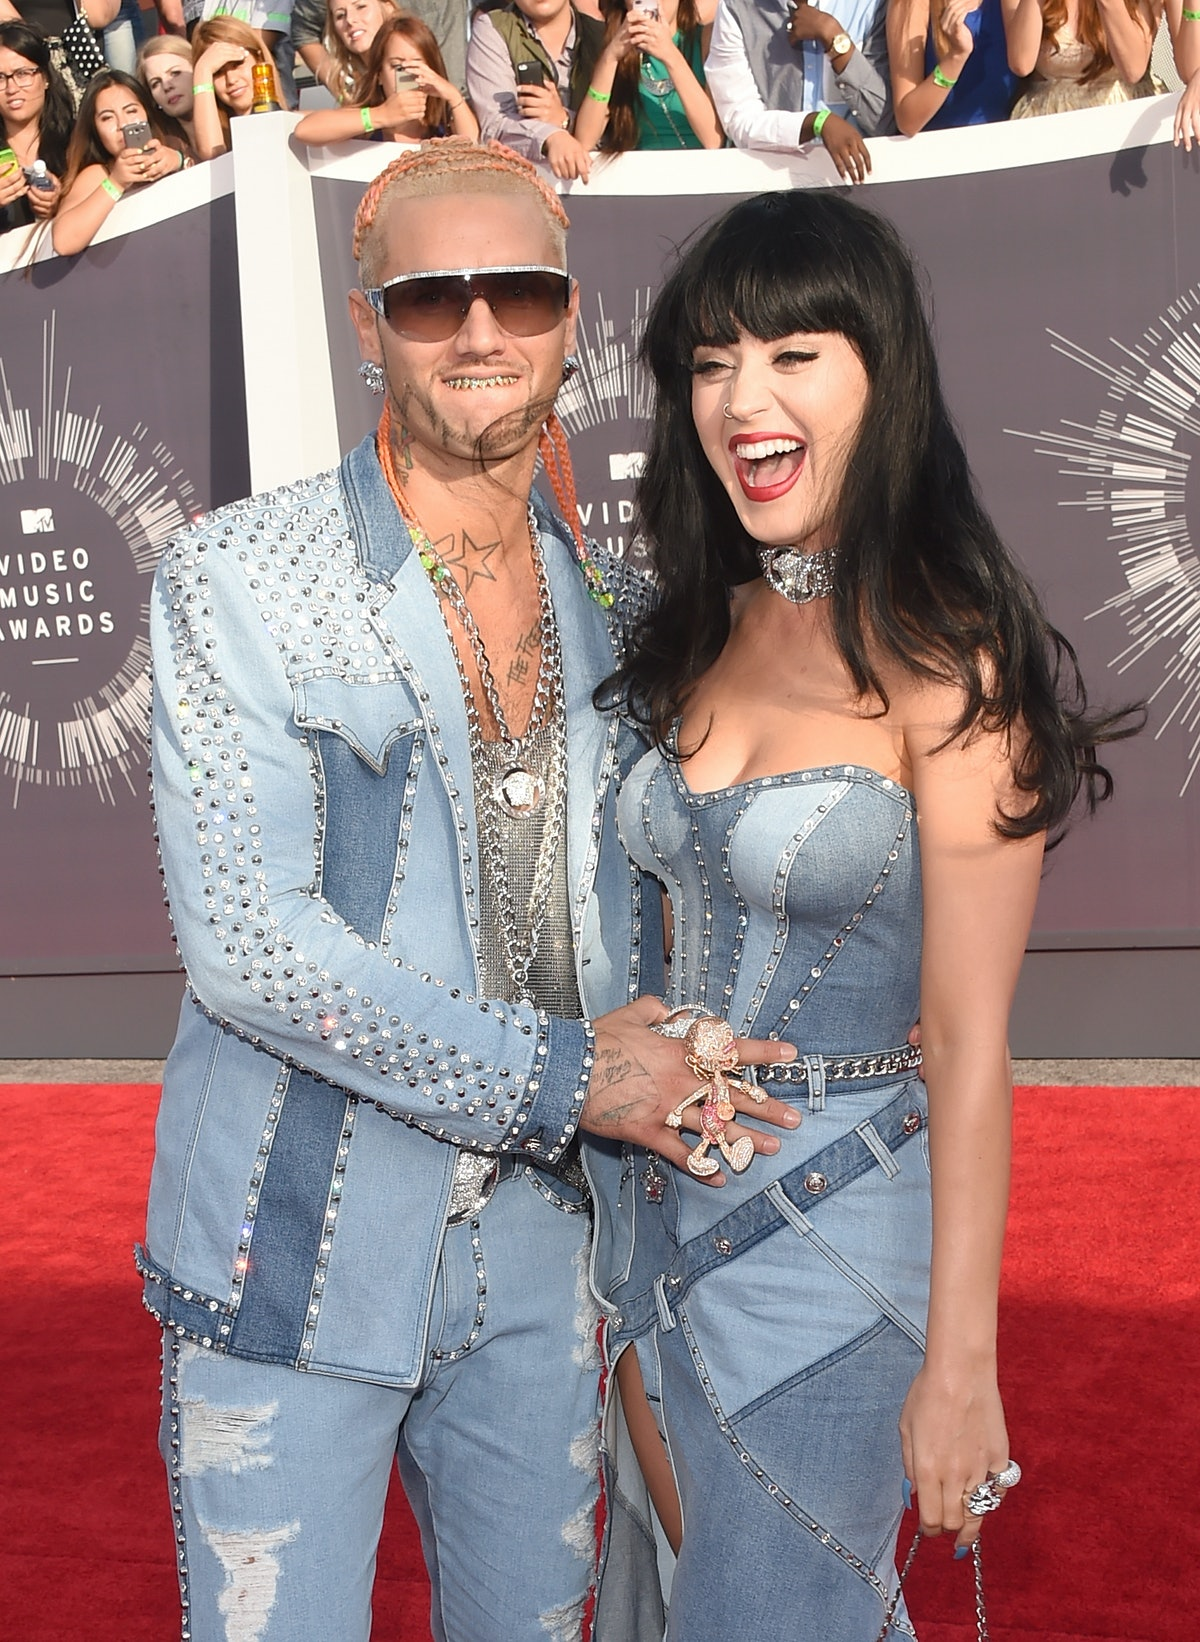 riff raff dating katy perry (getty images)katy perry and riff raff went tacky for the mtv video music  awards on  for those wondering, no katy and raff aren't dating.